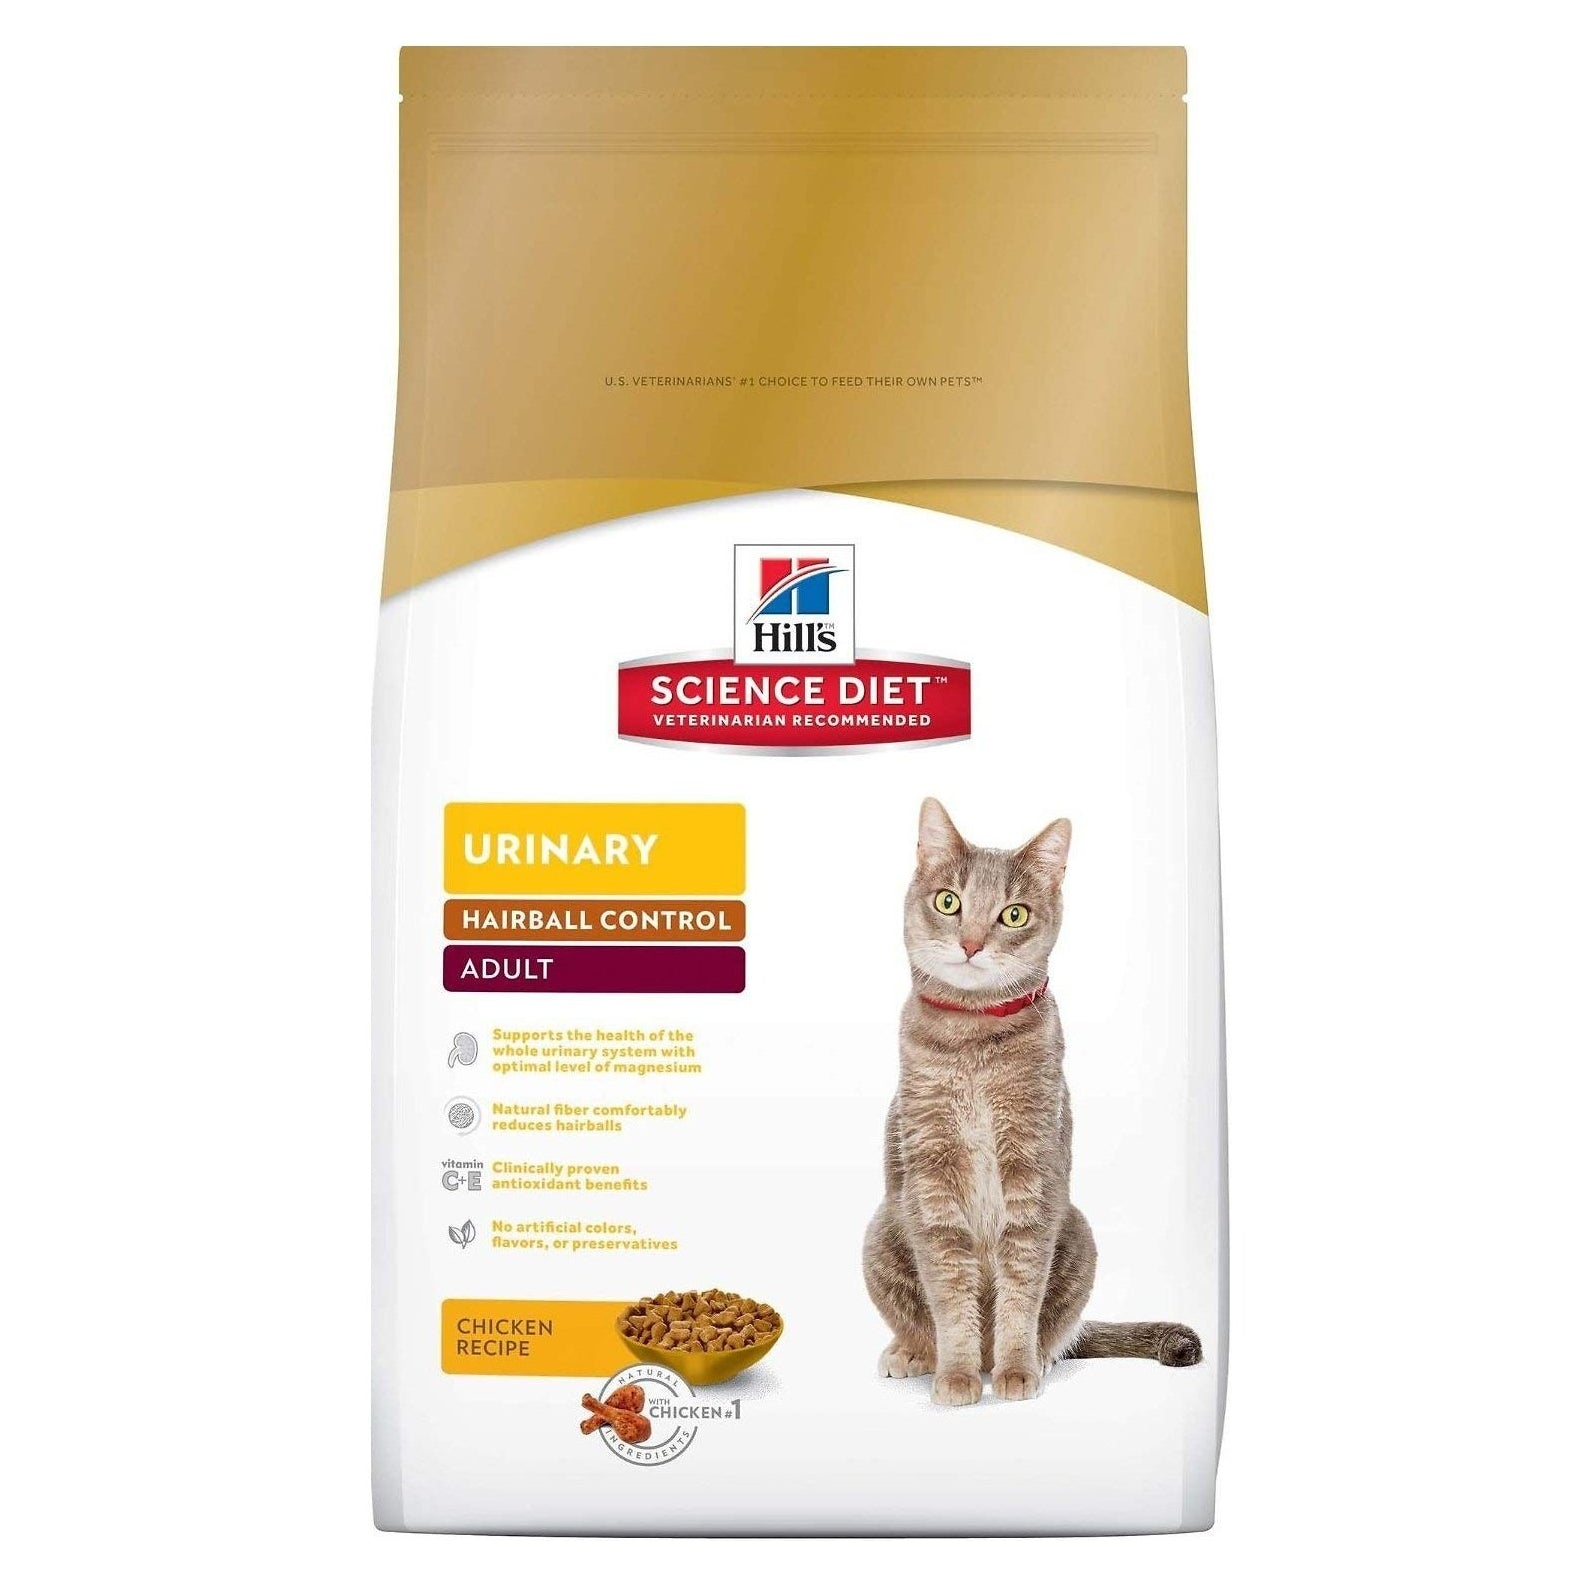 Hill's Science Diet Adult Urinary Hairball Control Chicken Cat Food 1.58 Kg - pet-club-india